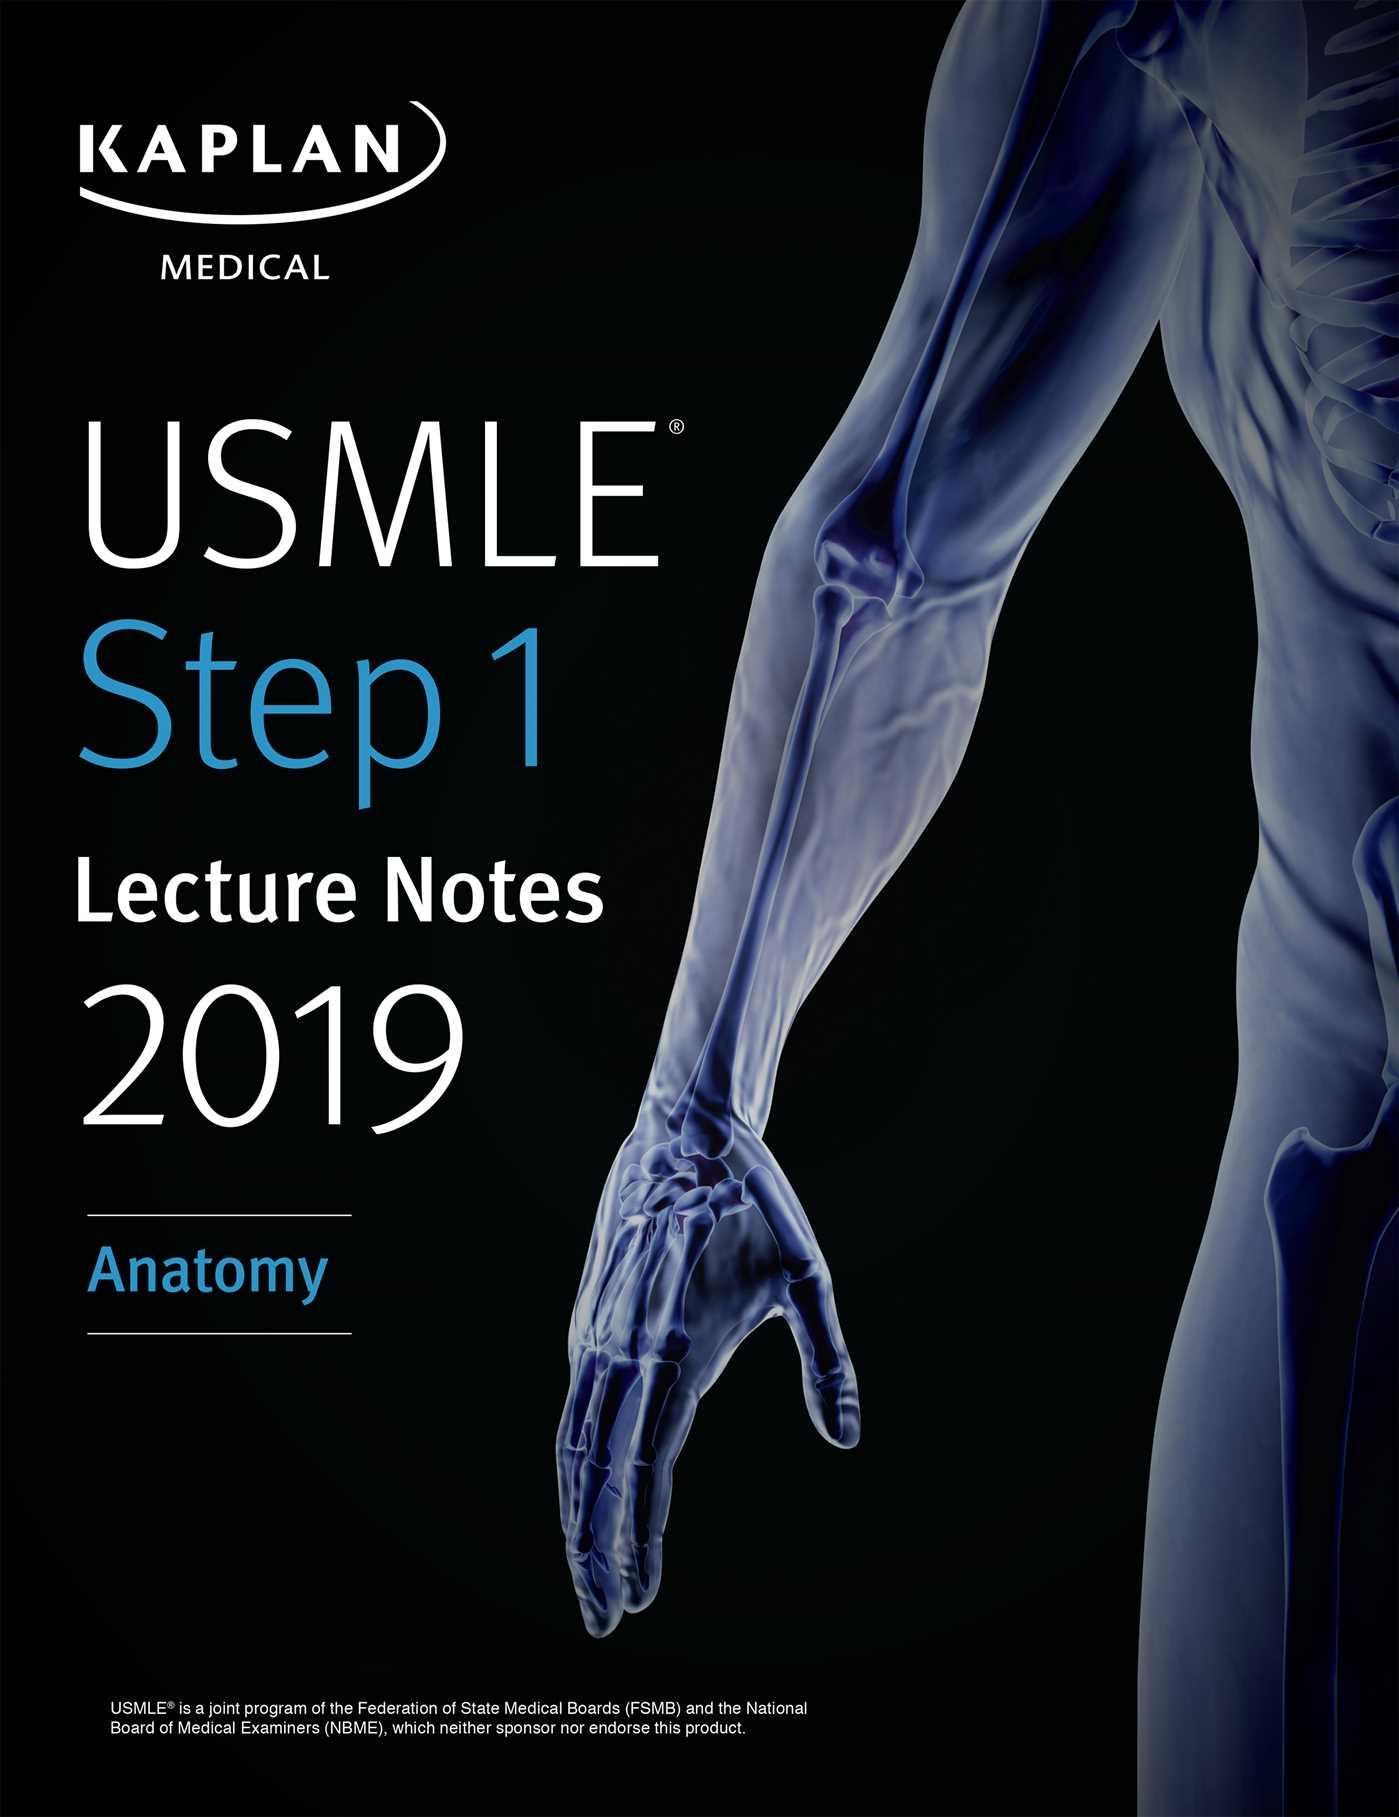 Usmle Step 1 Lecture Notes 2019 Anatomy Ebook By Kaplan Medical